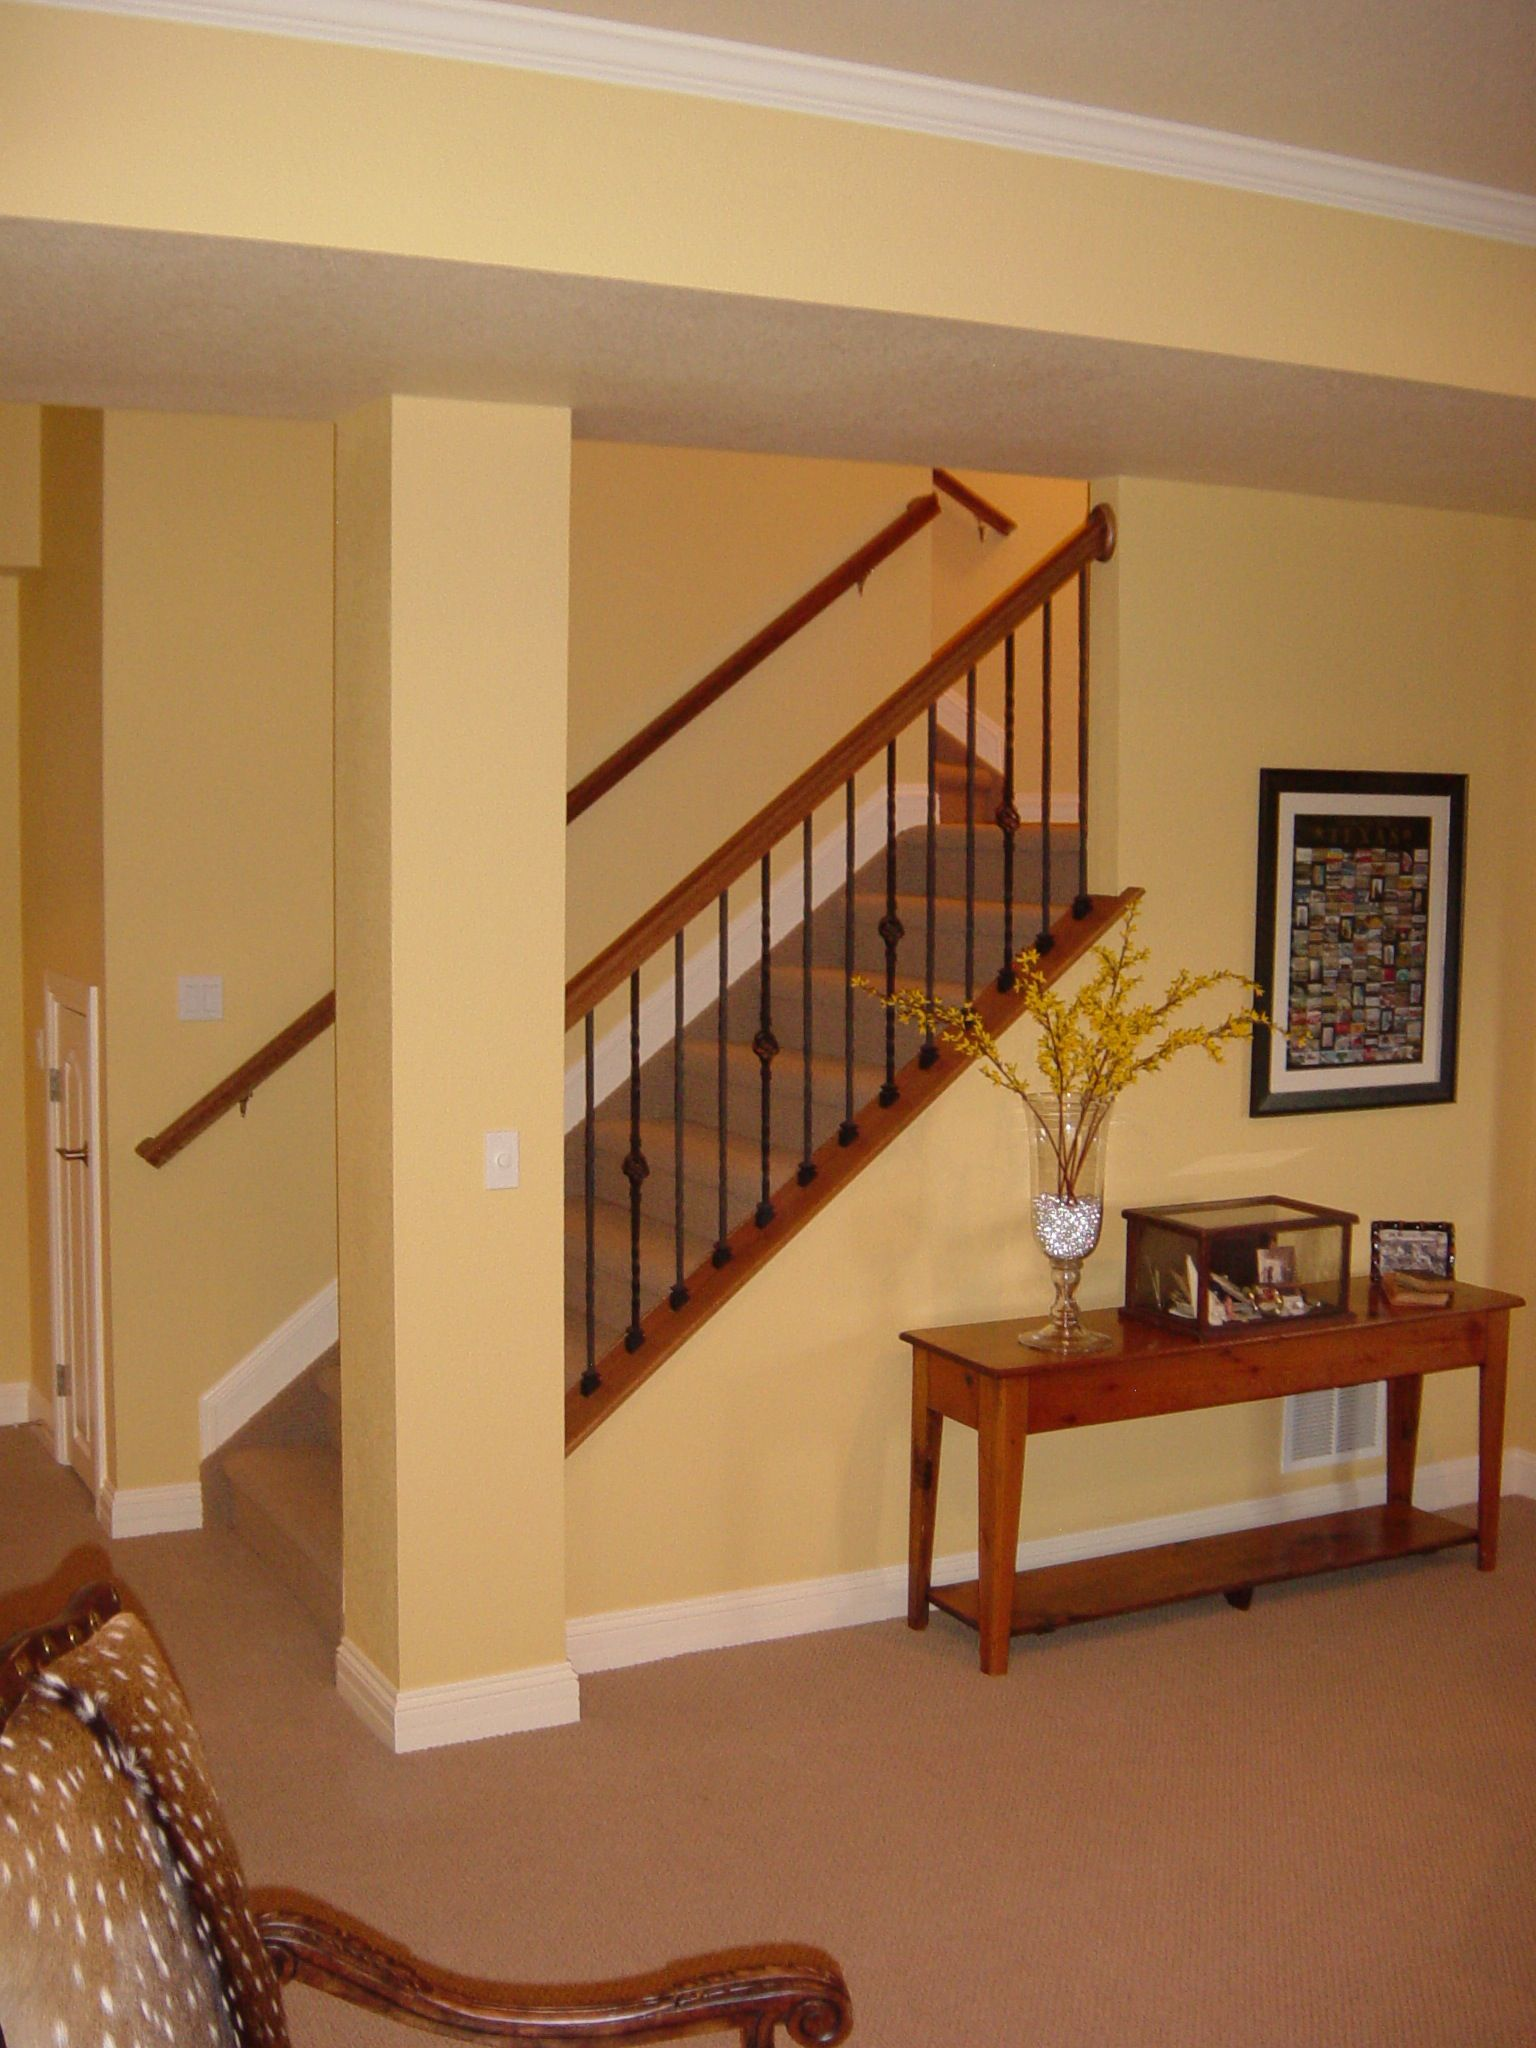 Basement Stairs Ideas: When Homes Are Constructed With Unfinished Basements, The